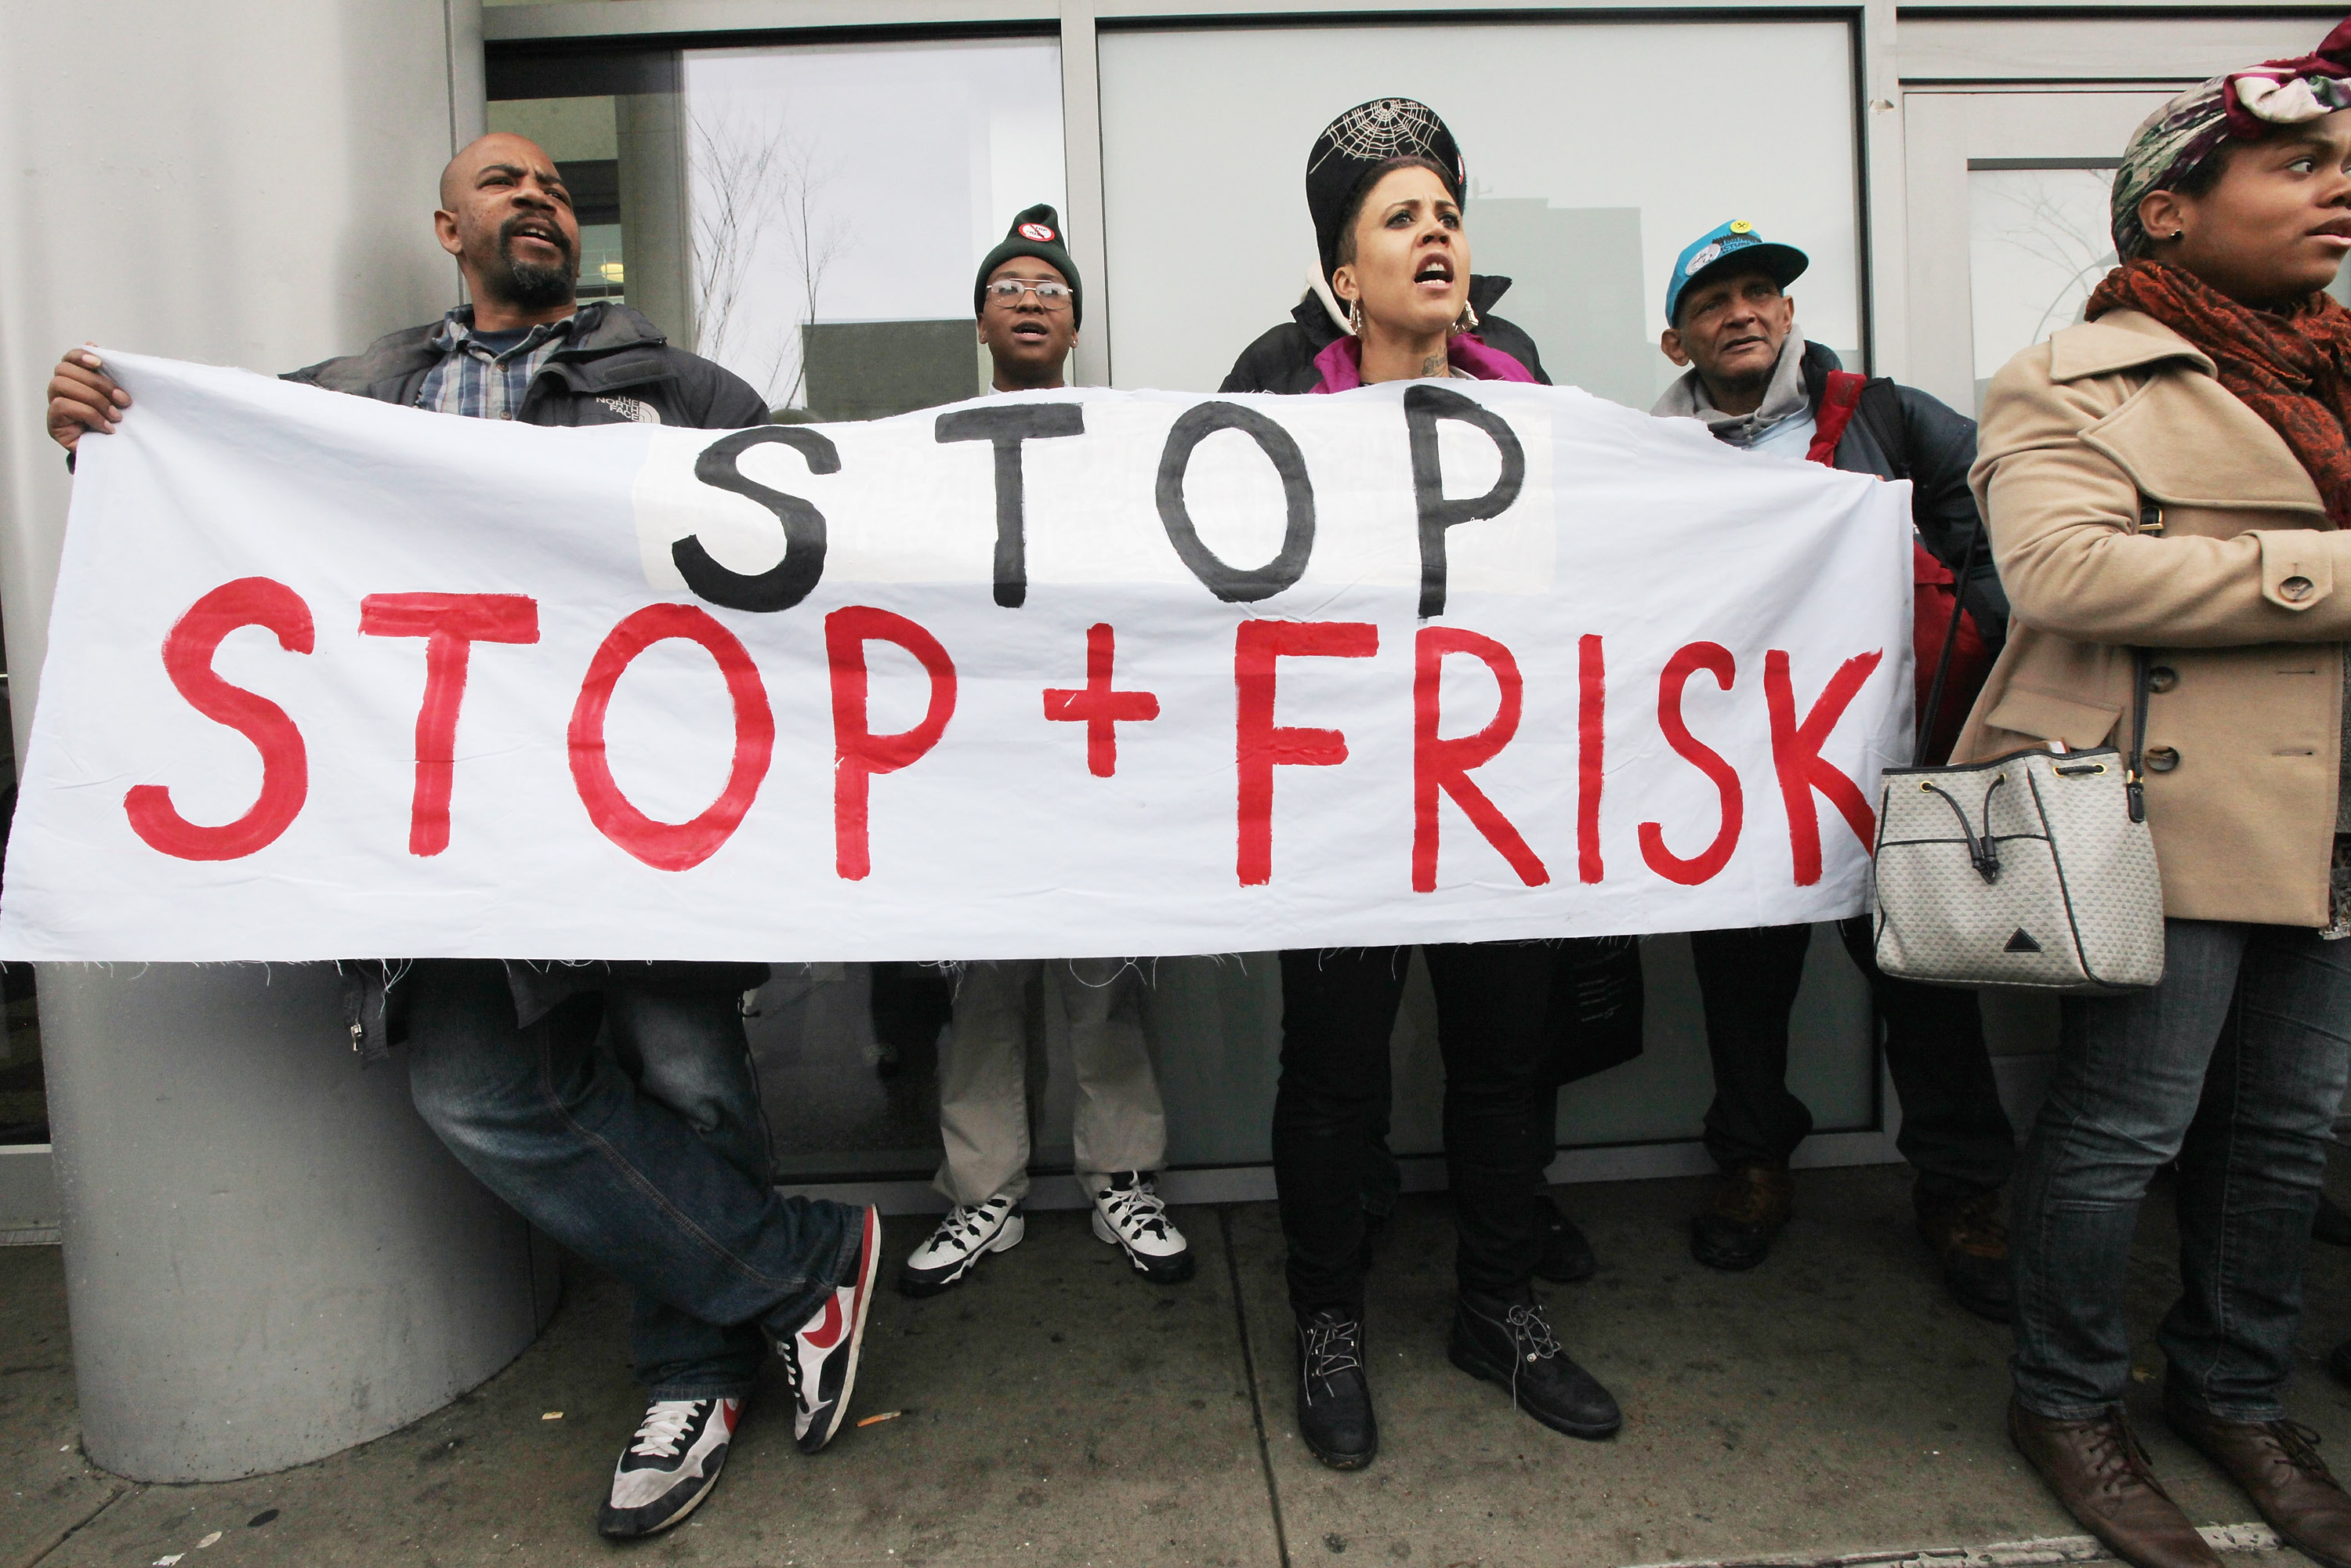 stop and frisk rally